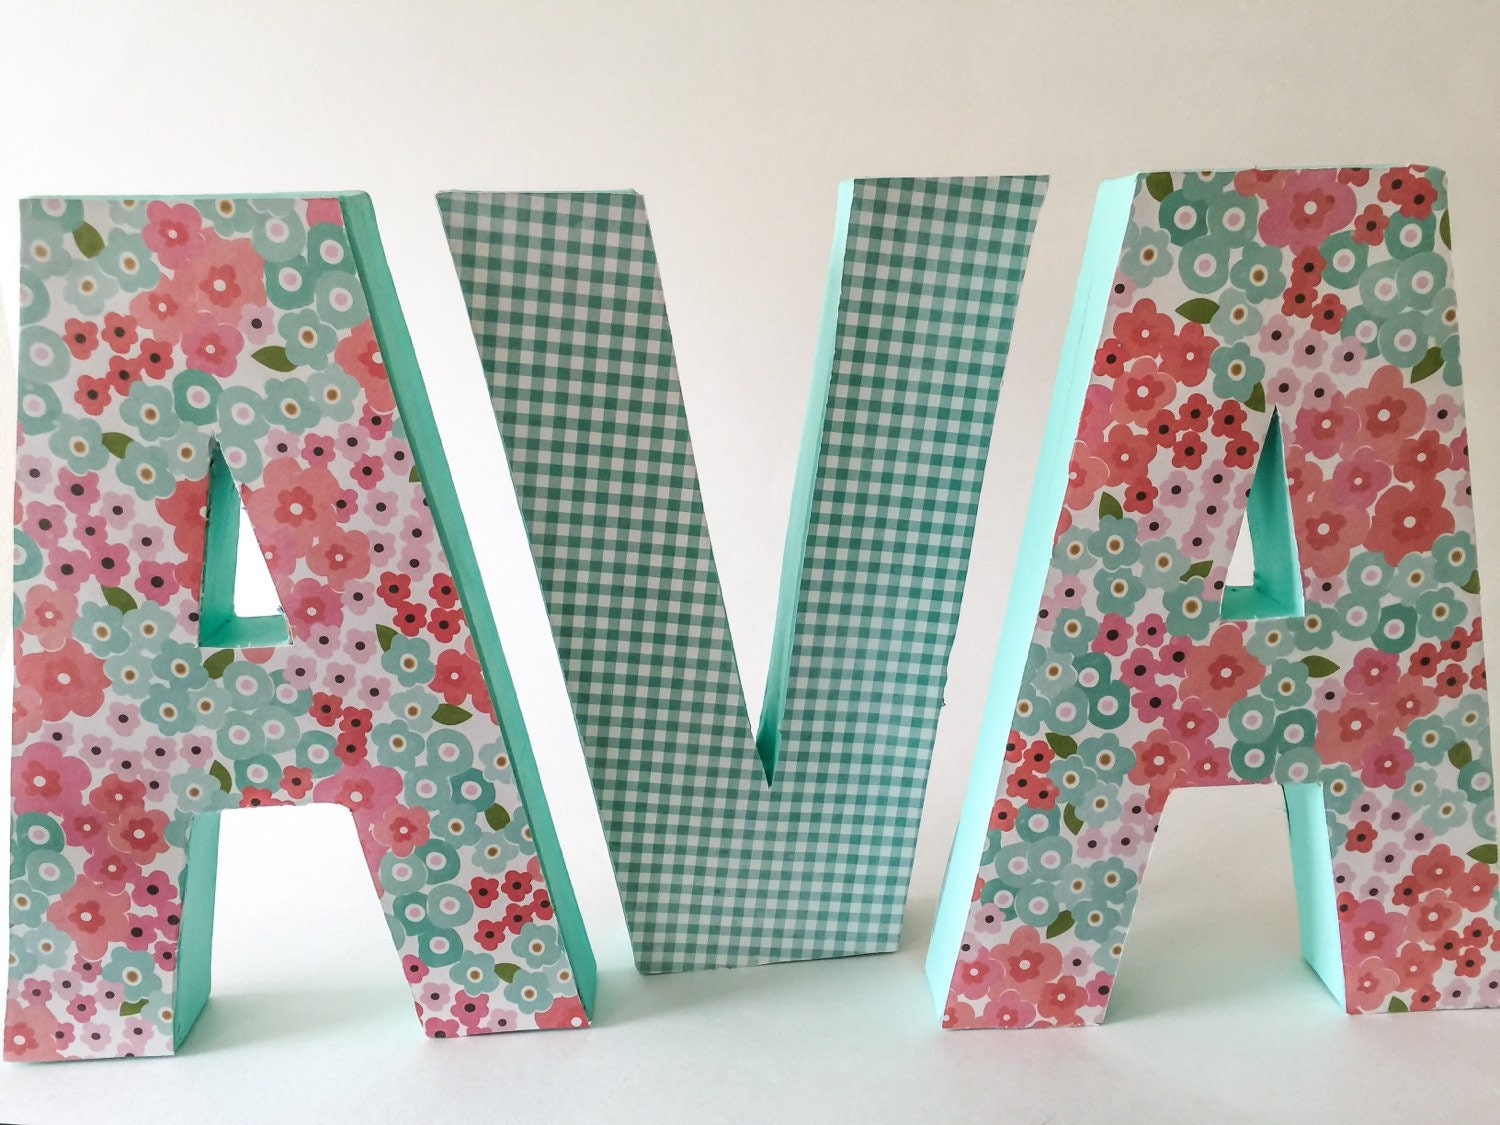 covering wooden letters with scrapbook paper Wooden letters and scrapbook paper by gmadiane on indulgycom.